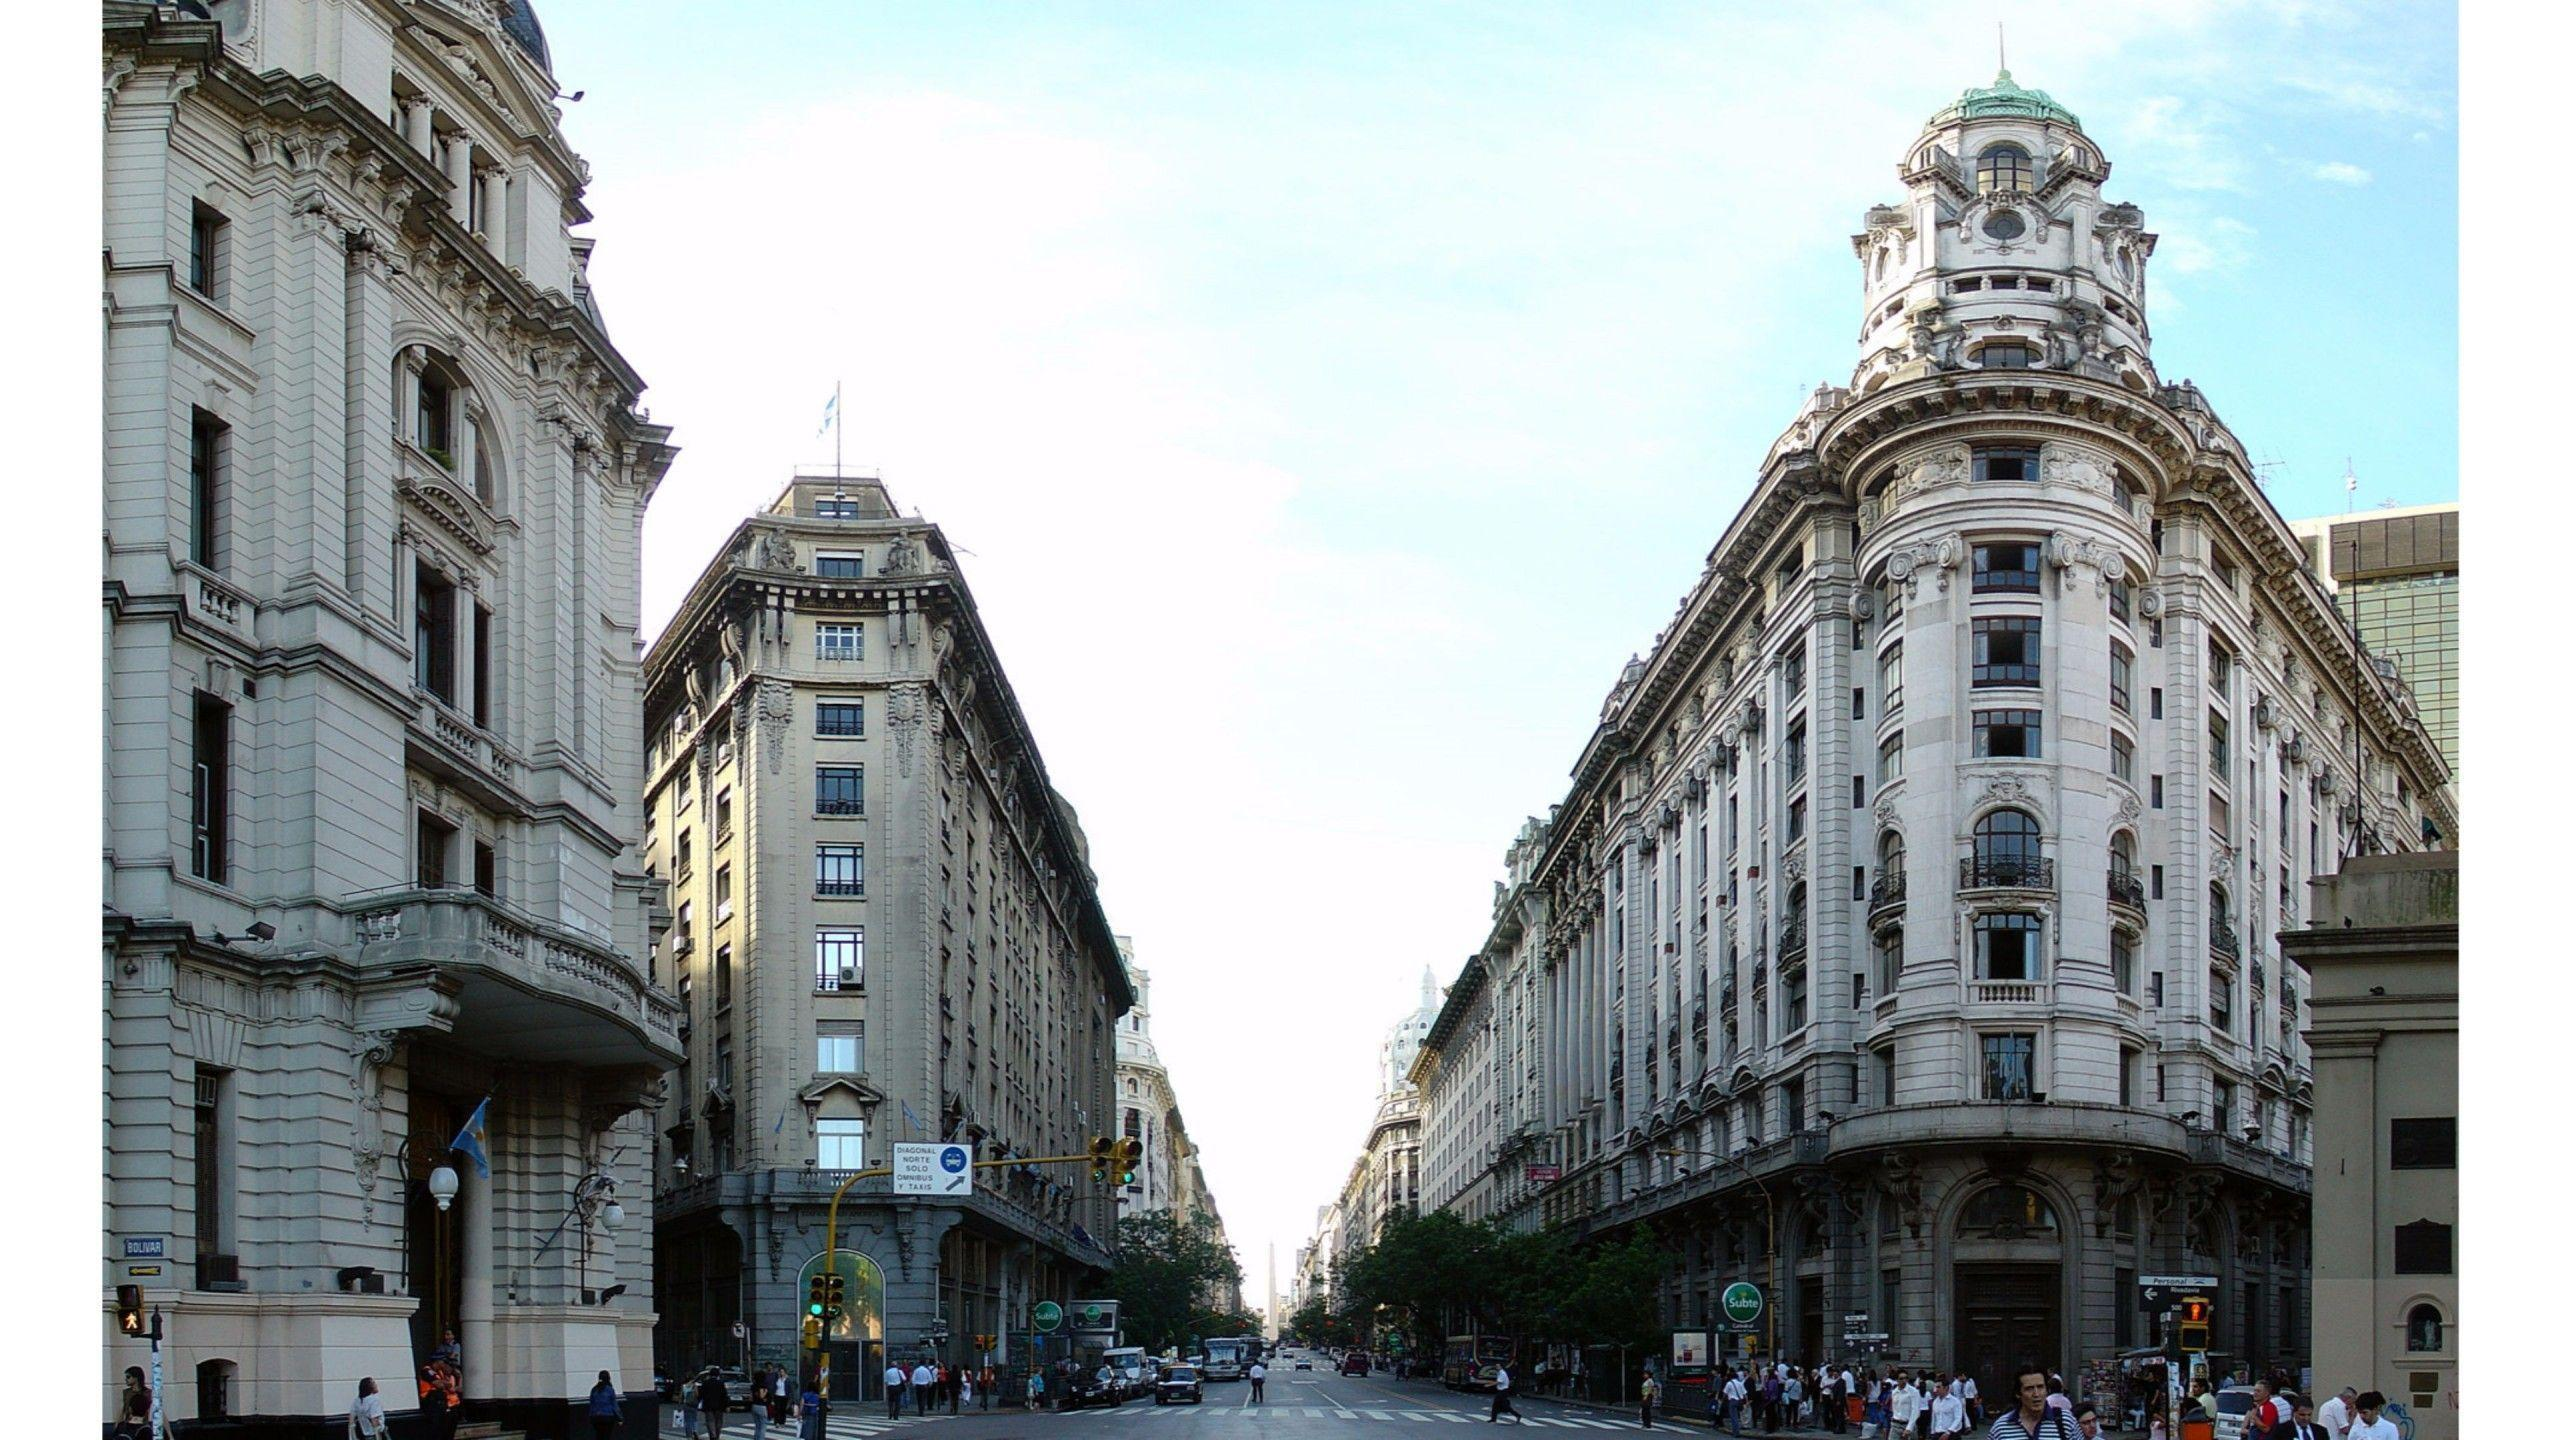 Historic Buenos Aires Argentina 4K Wallpapers | Free 4K Wallpaper